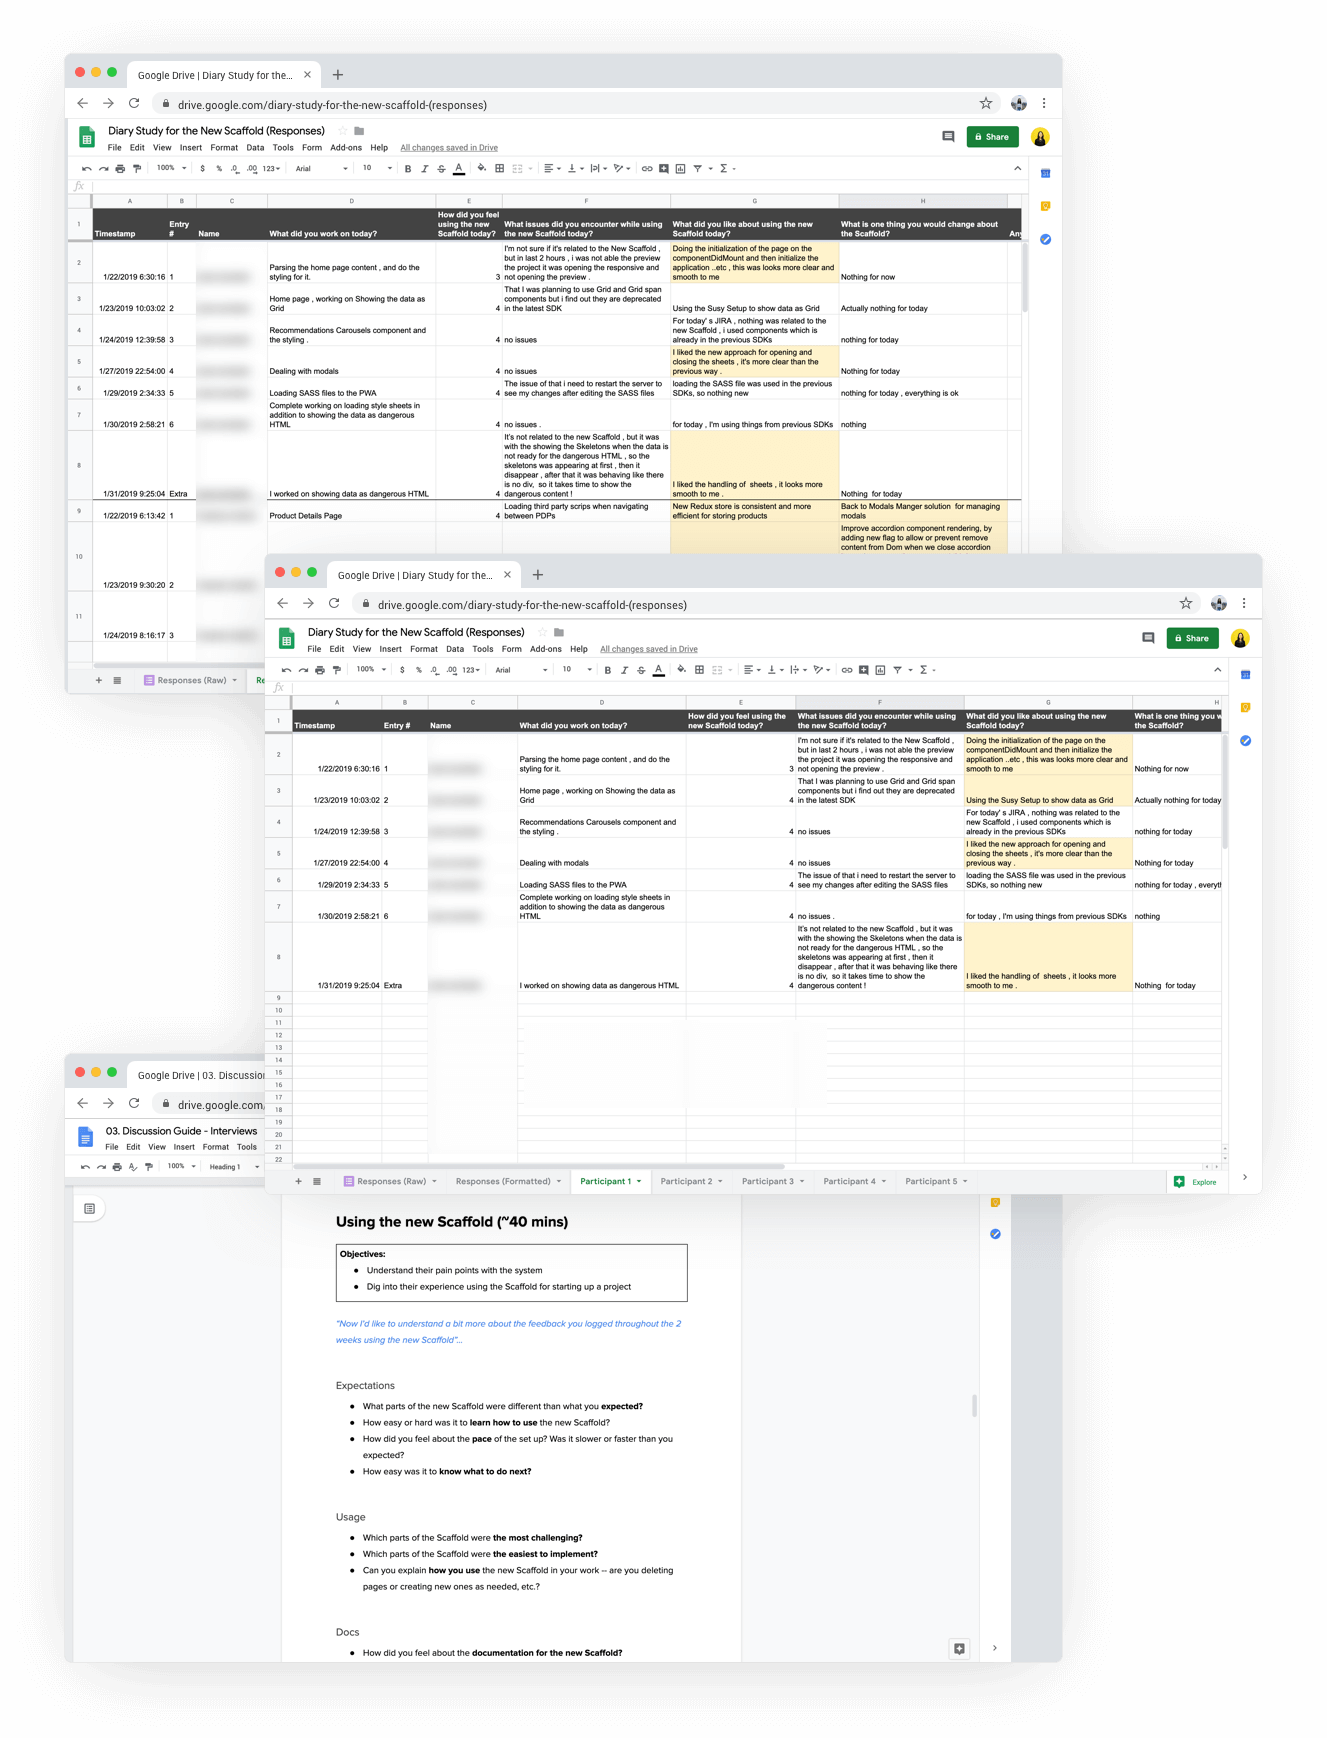 3 web browser screens showing a spreadsheet of participant responses and the Discussion Guide document